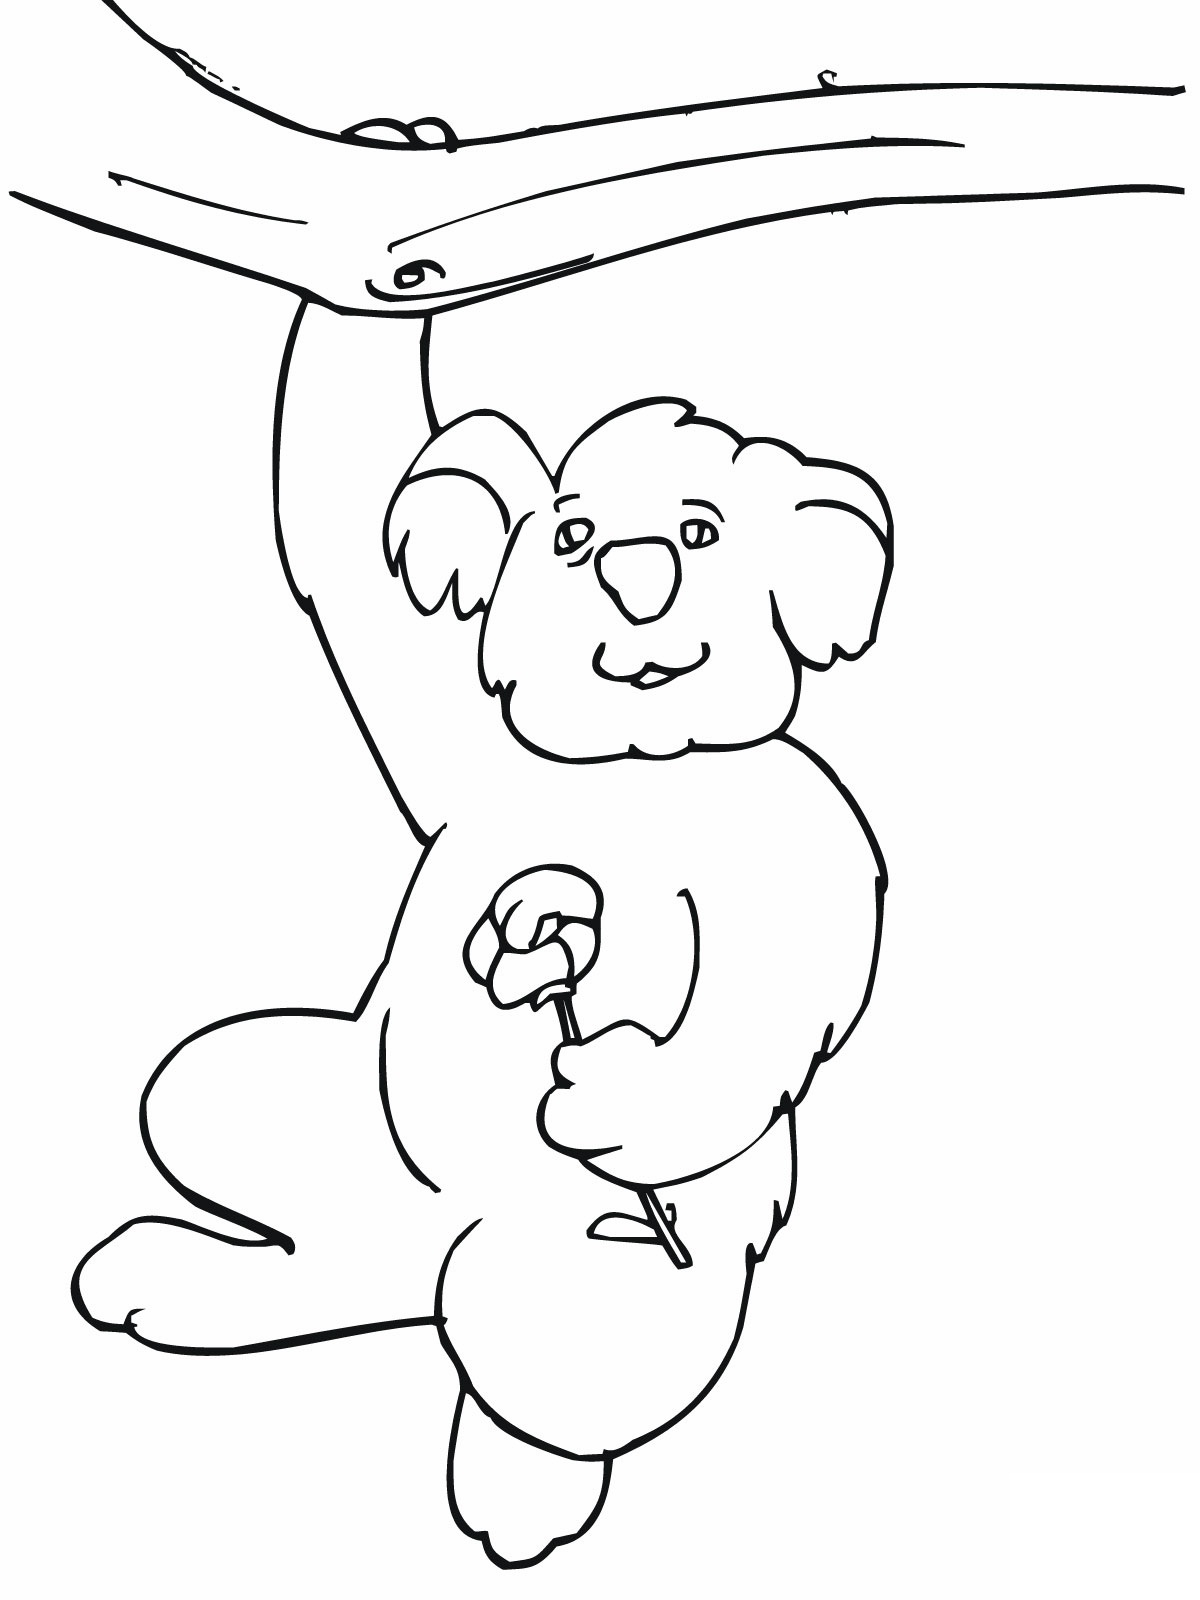 Printable coloring pages koala - Funny Koala Coloring Pages